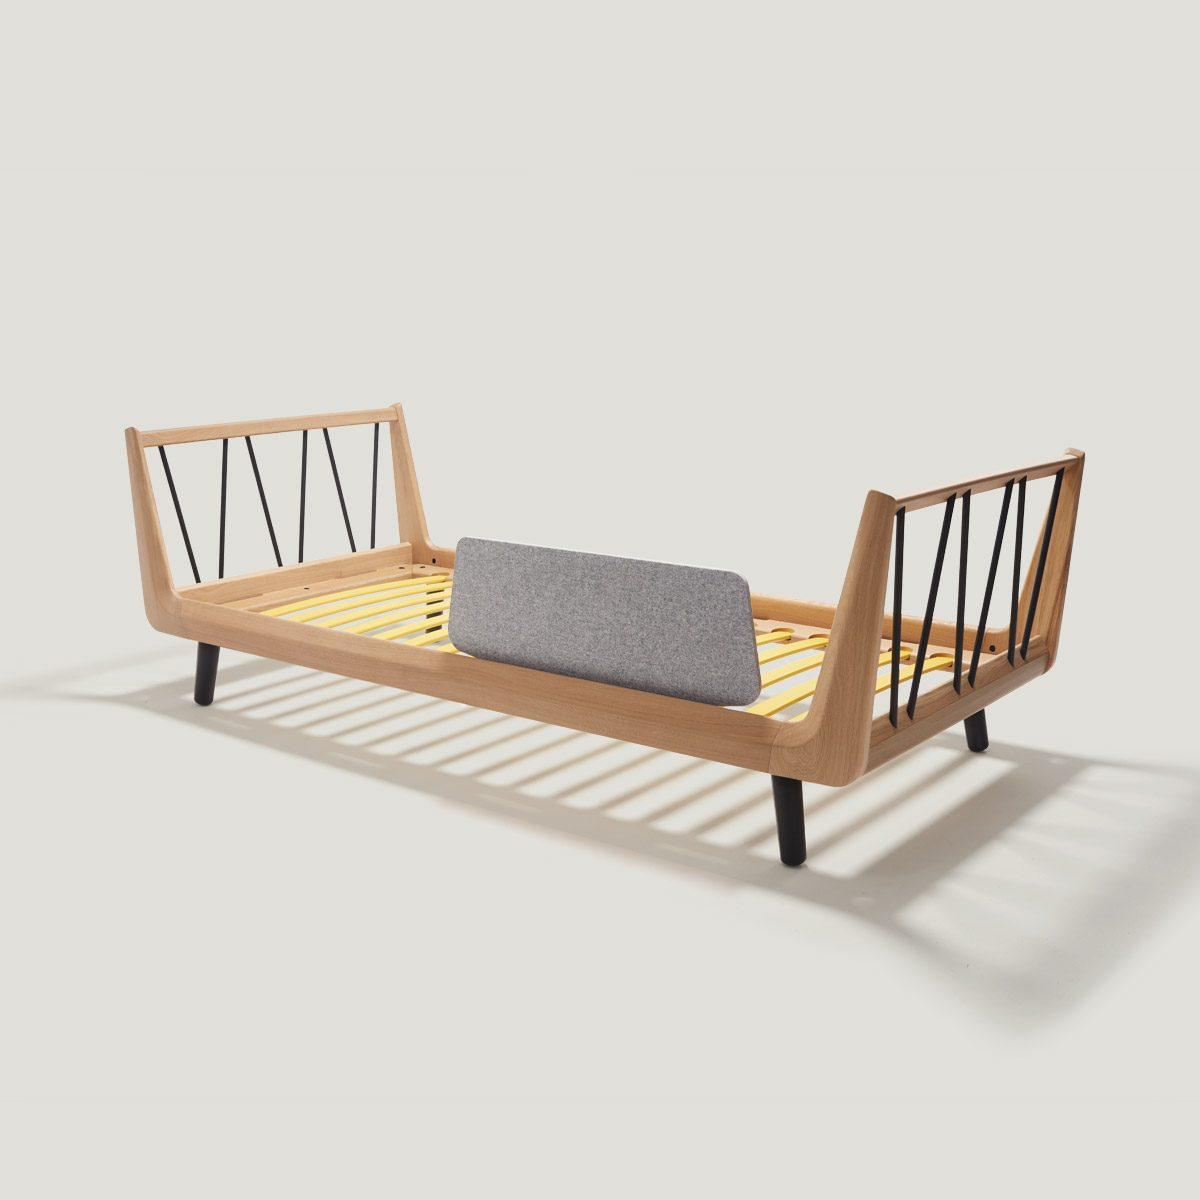 VII classic single bed – made of solid oak wood.